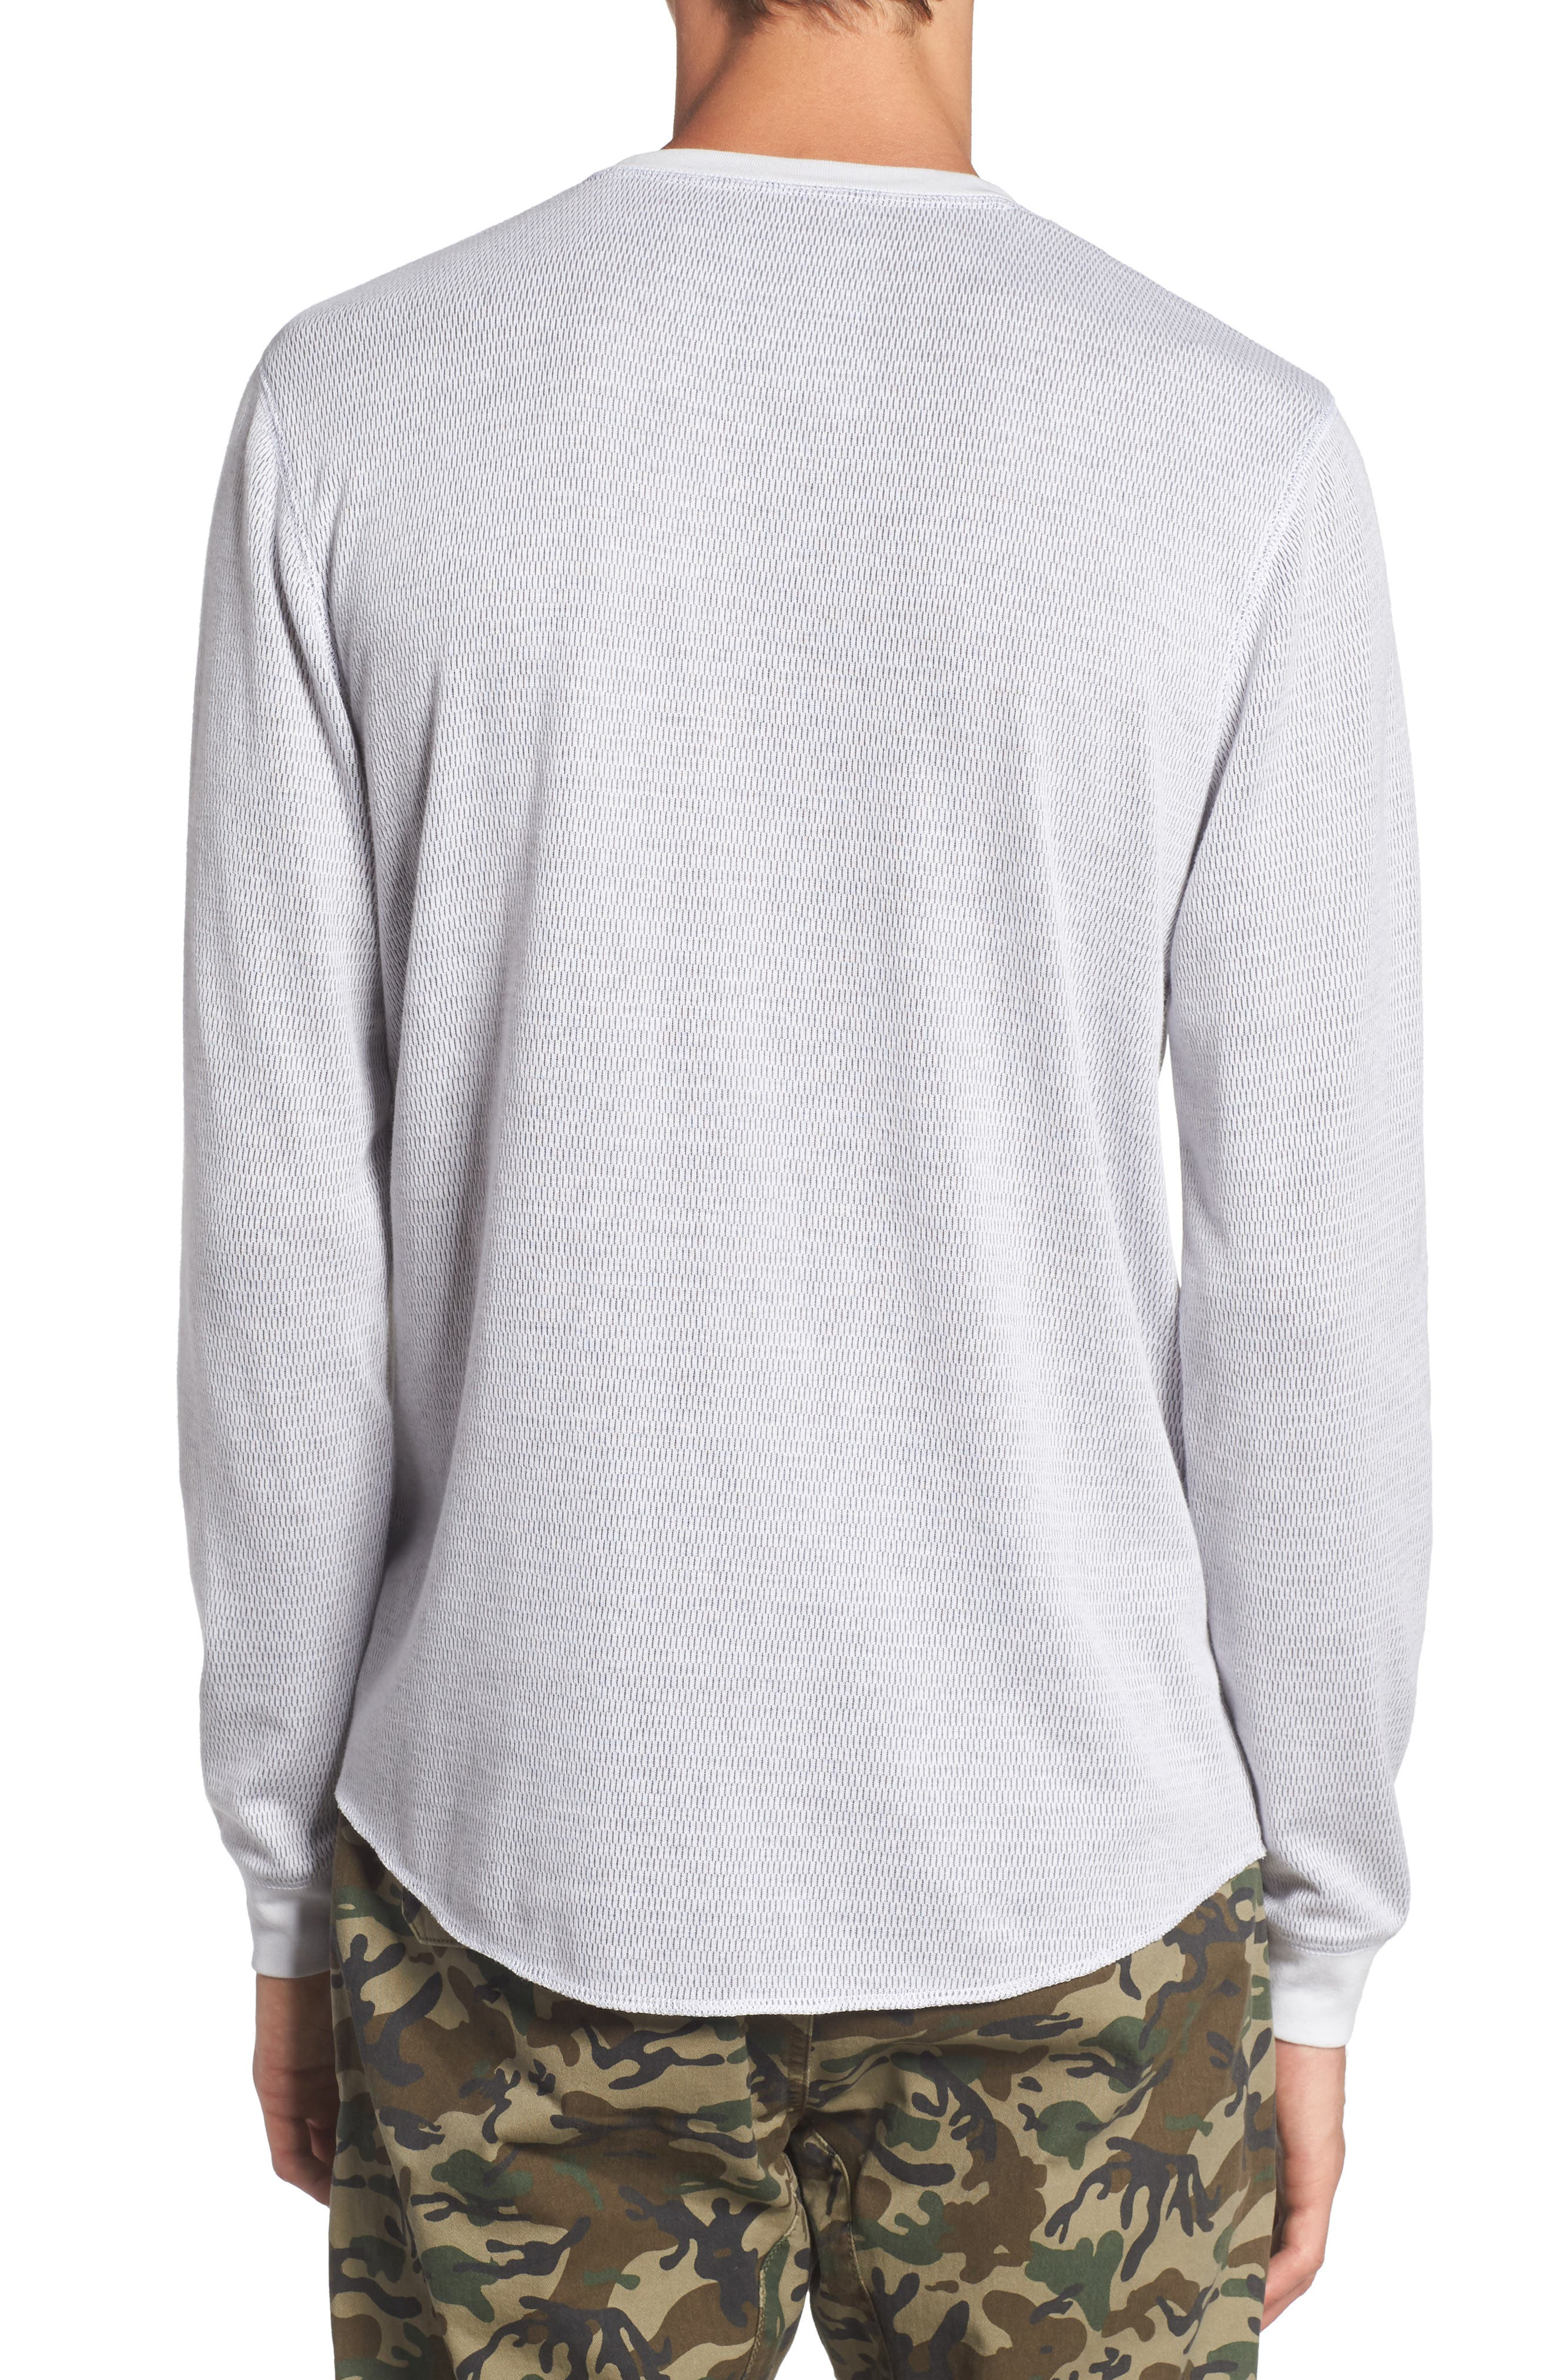 Alternate Image 2  - The Rail Notch Neck Thermal T-Shirt (2 for $50)